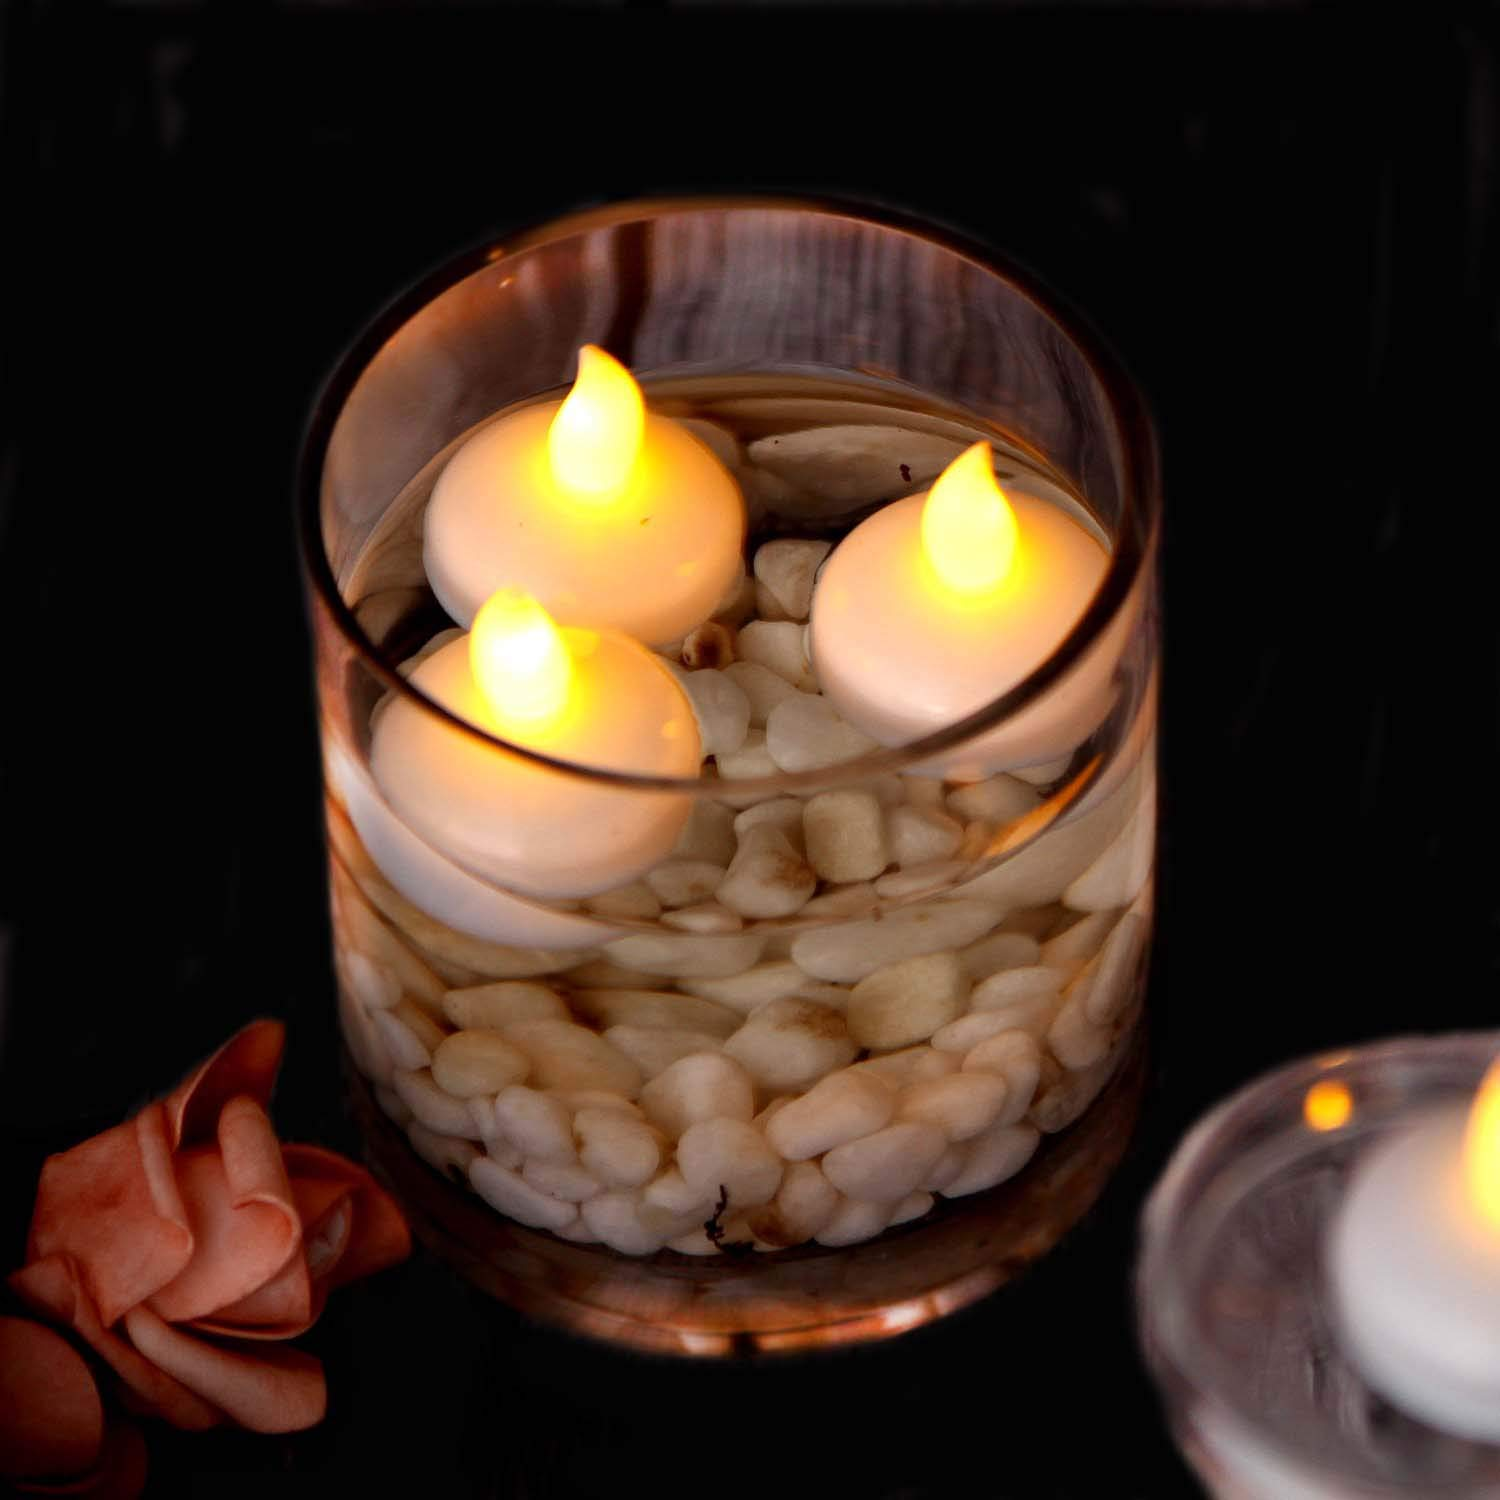 Tker Floating Flameless Candles, Waterproof Flickering LED Tea Lights Battery Operated for Wedding Party Pool SPA - Warm White